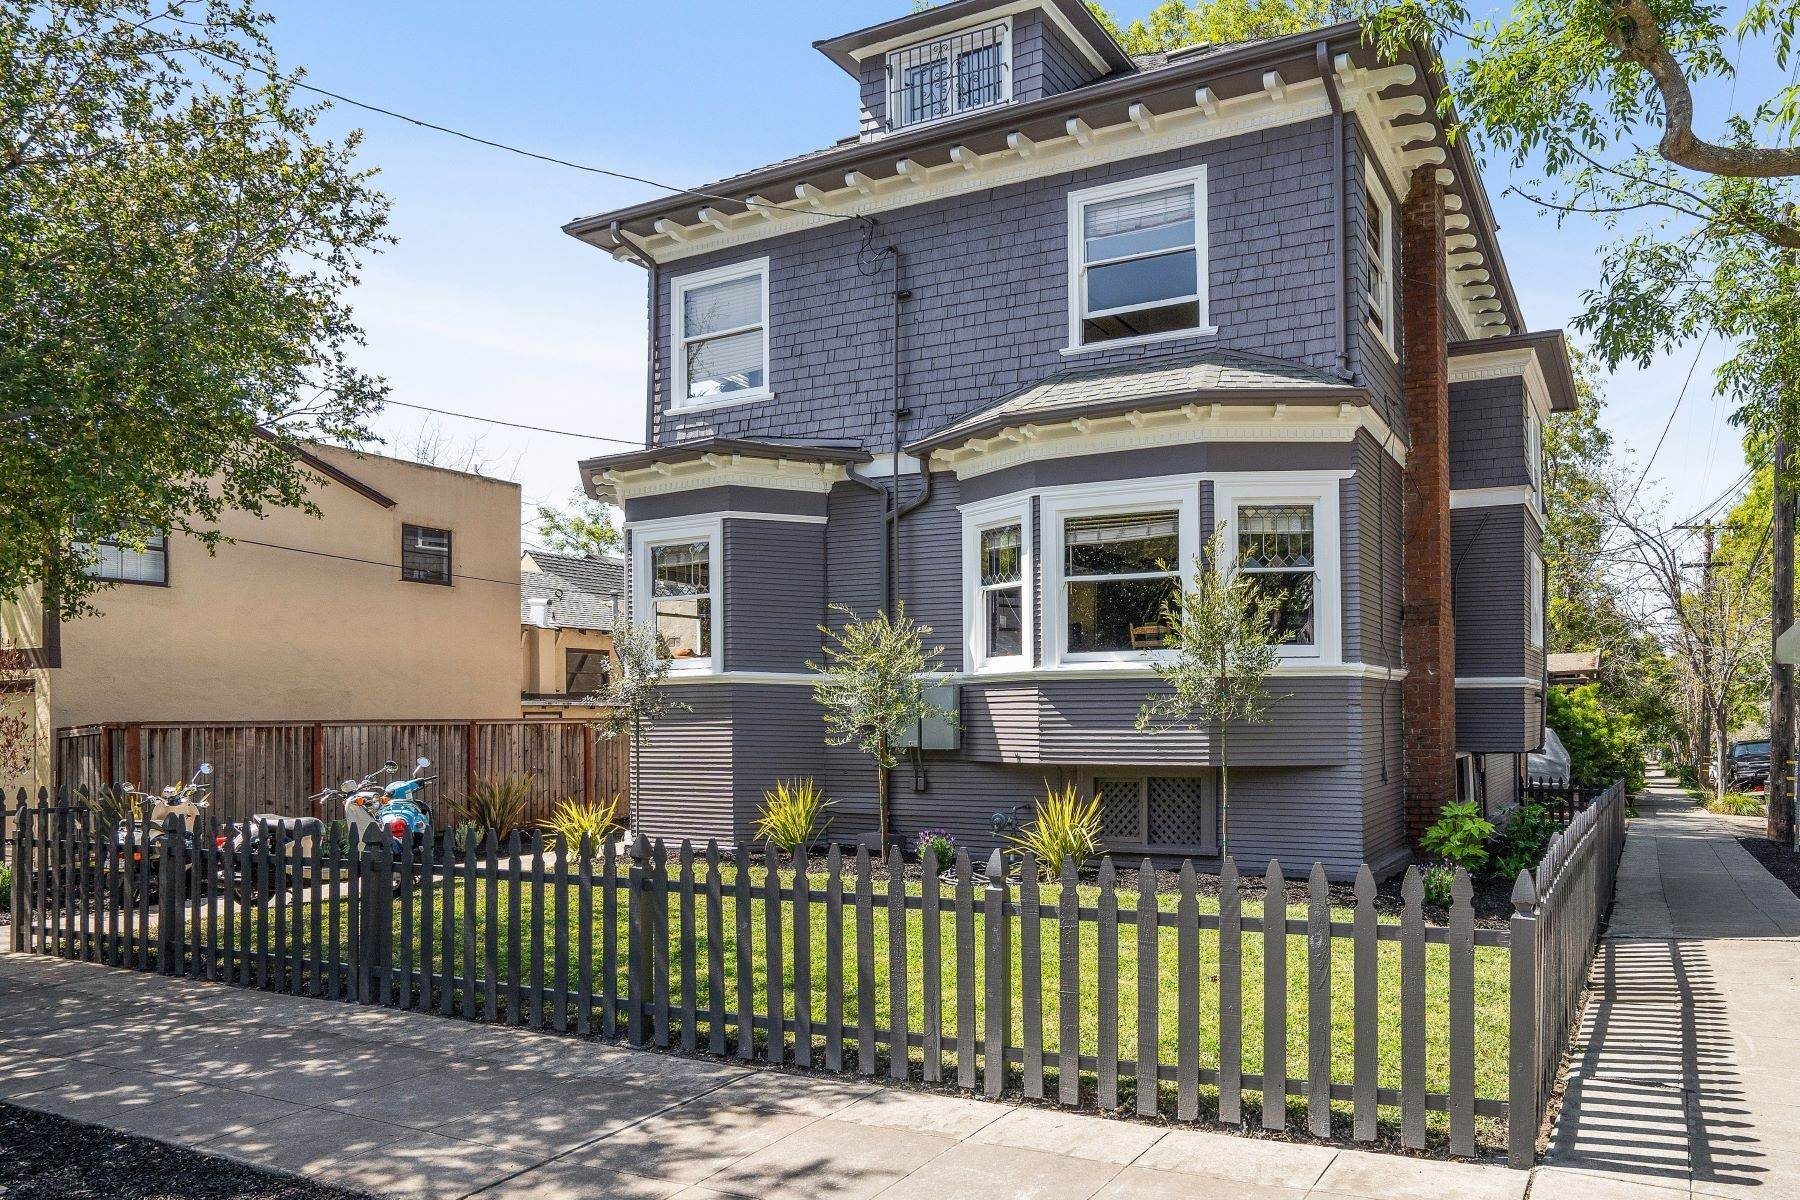 Single Family Homes for Sale at Grand Edwardian Home 2700 Dana Street Berkeley, California 94705 United States